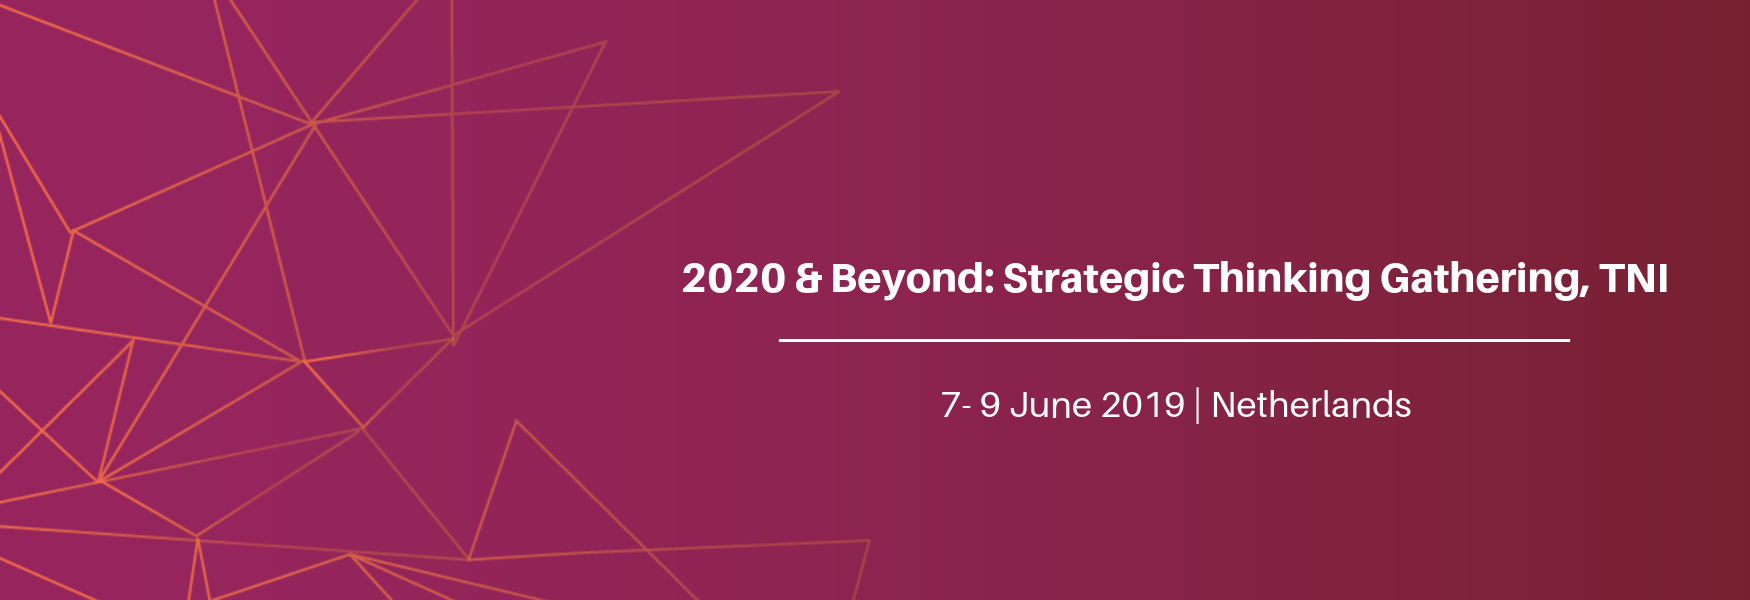 2020 & Beyond: Strategic Thinking Gathering